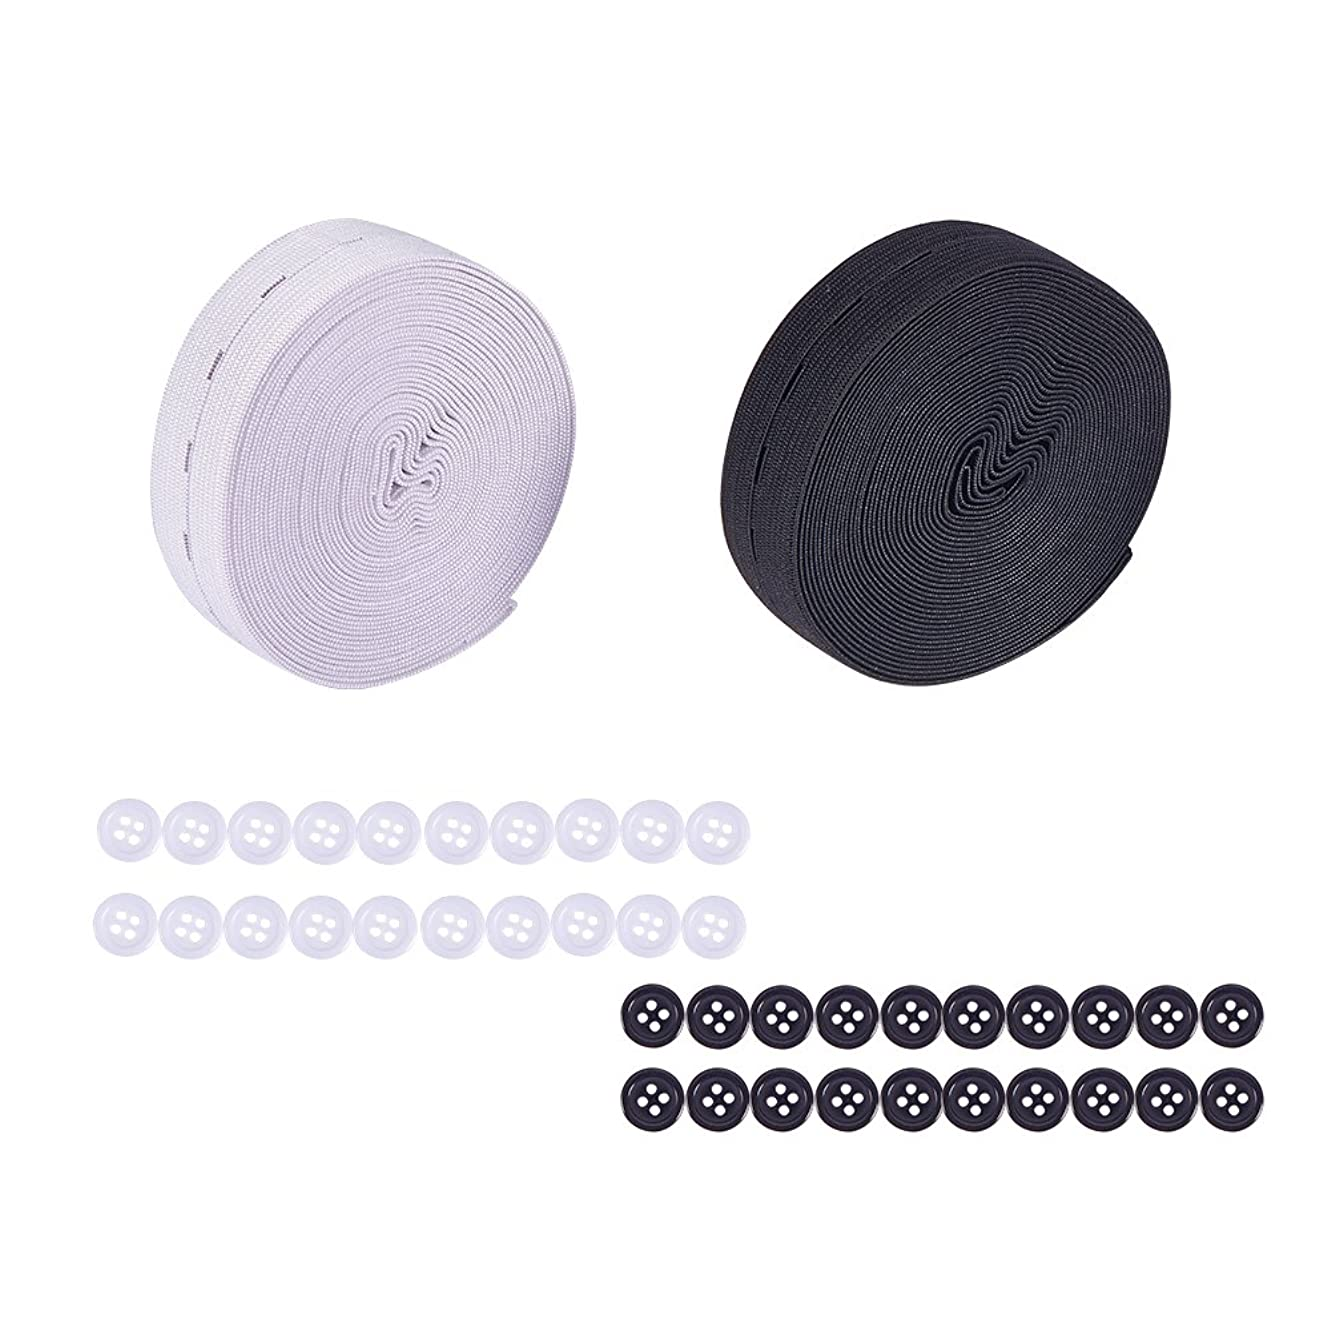 NBEADS 2 Rolls 25mm (5.5 Yard/roll) Flat Rubber Elastic Band with 40 pcs Resin Buttons, Springy Stretch Knitting Sewing Elastic Spool Elastic Bands, Black and White